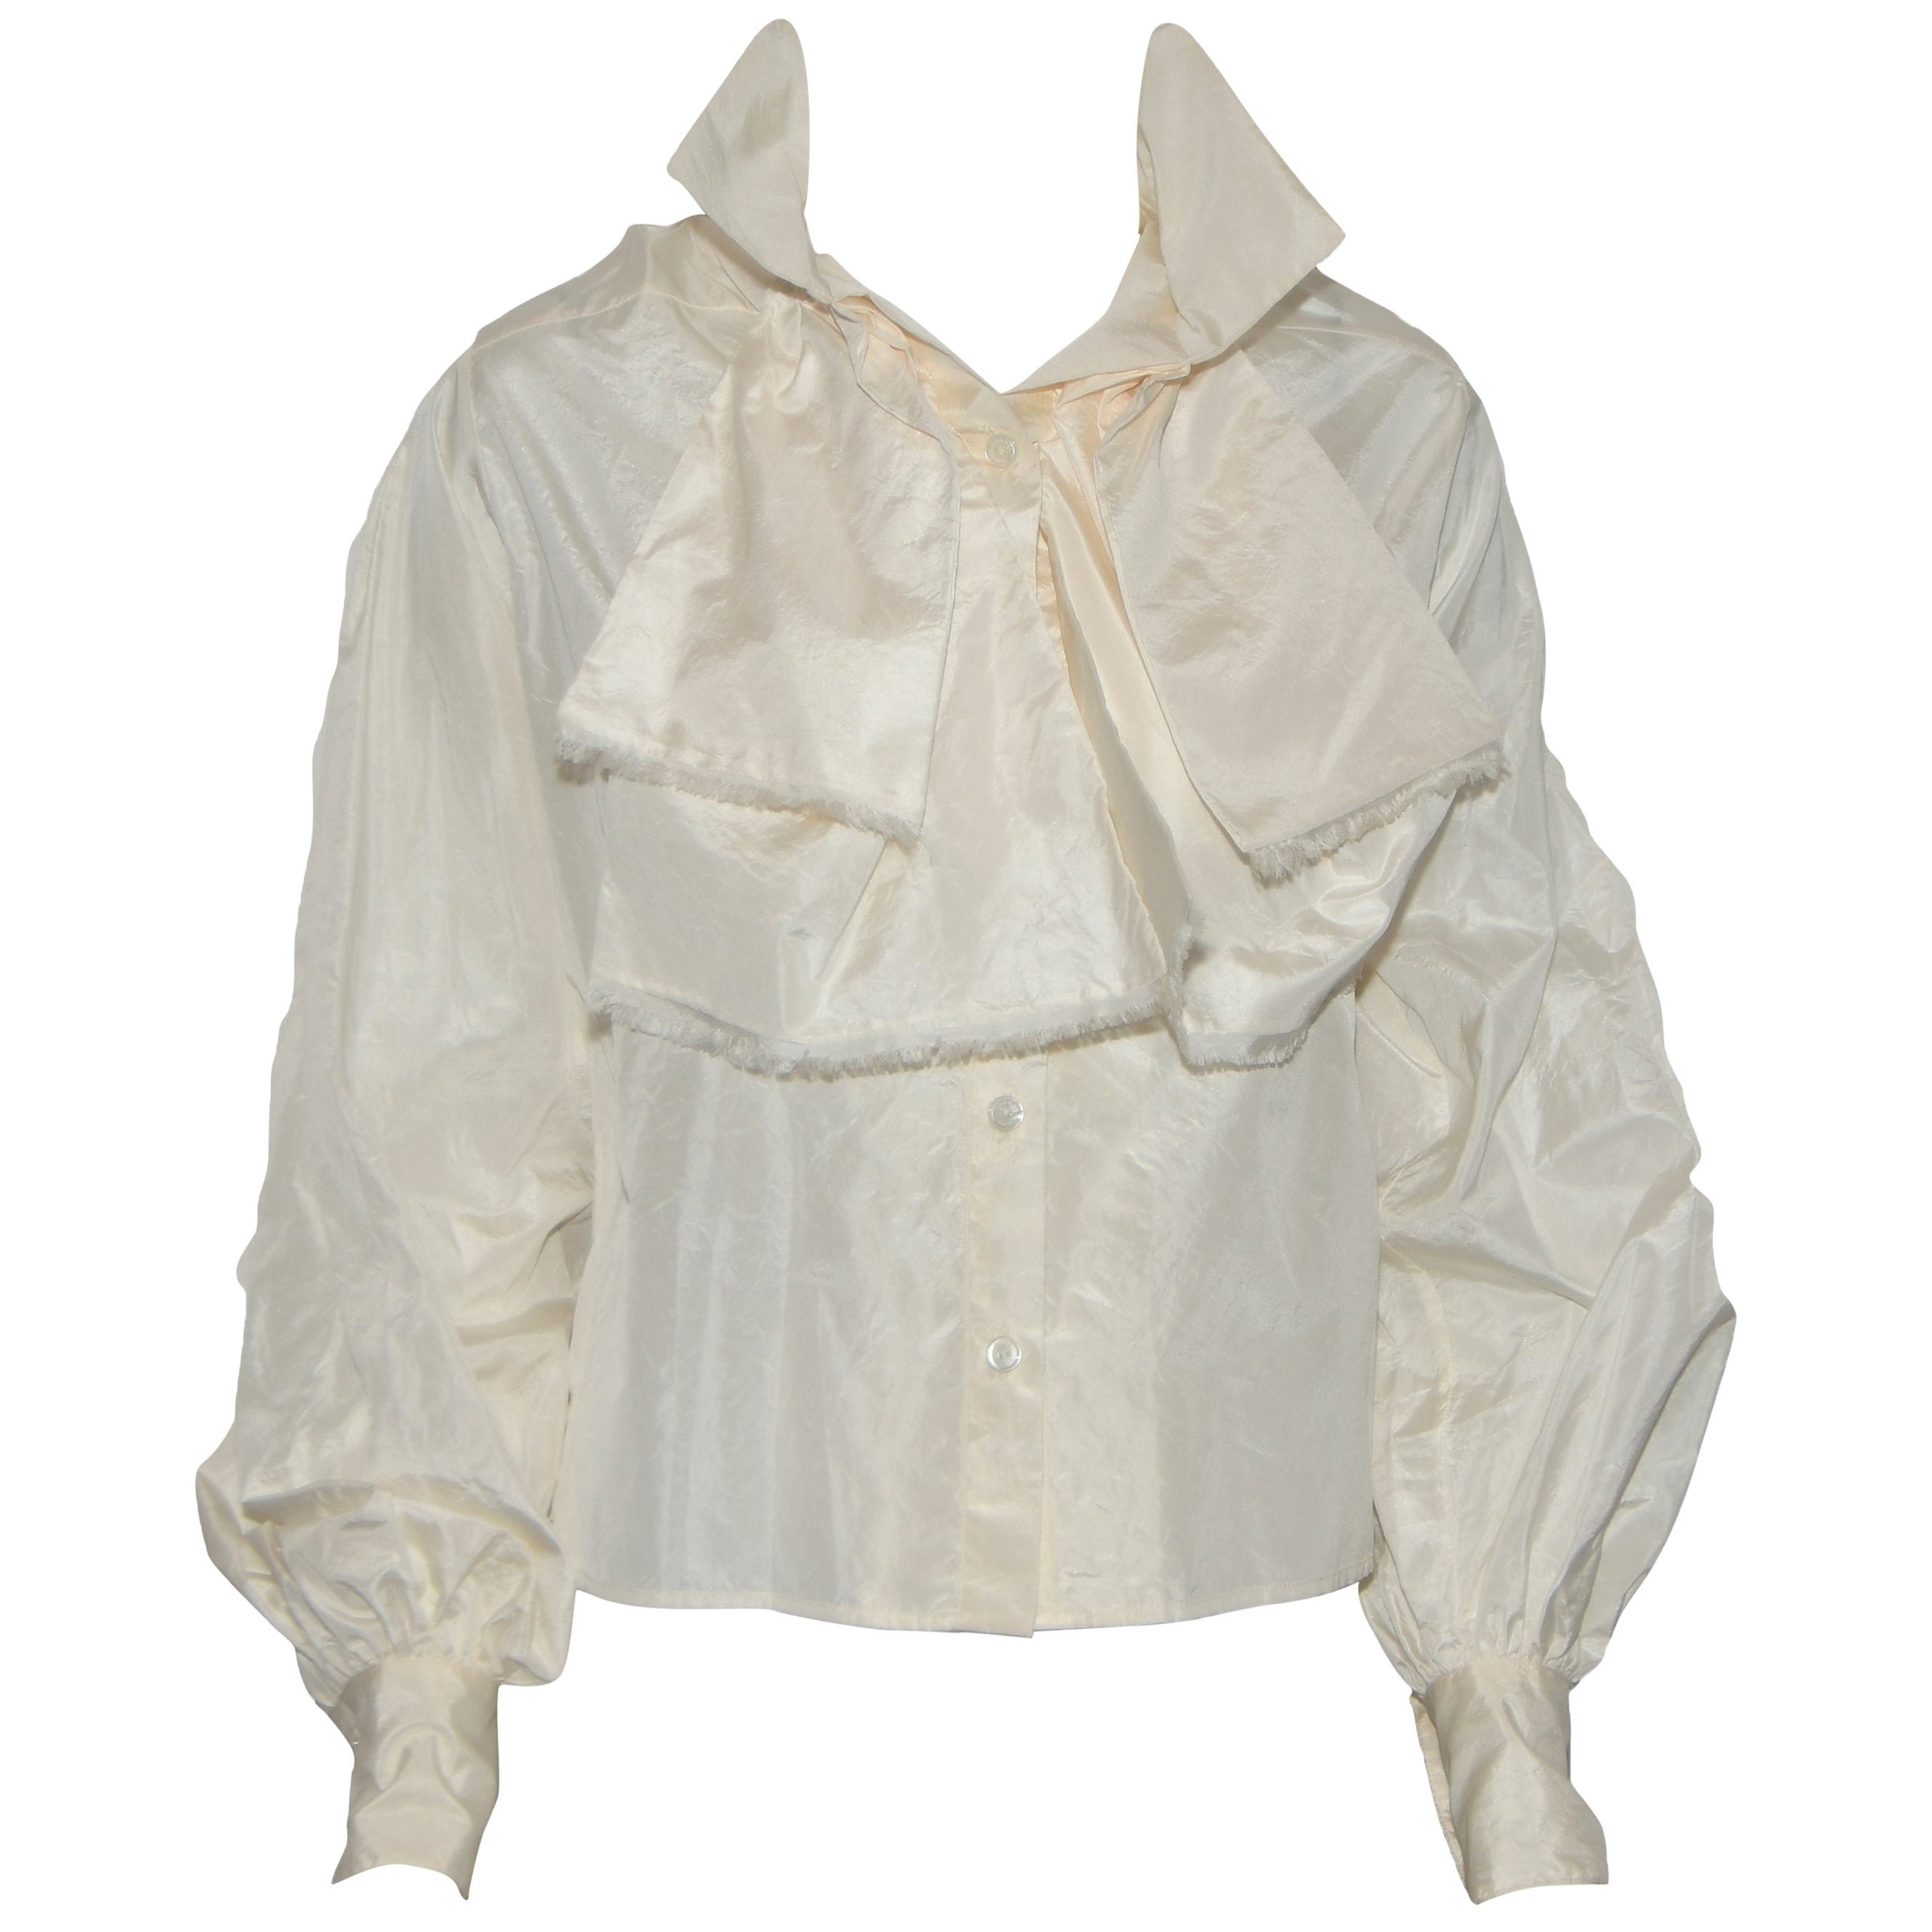 8f81bd575e Chanel Ivory Silk Shantung Blouse For Sale at 1stdibs